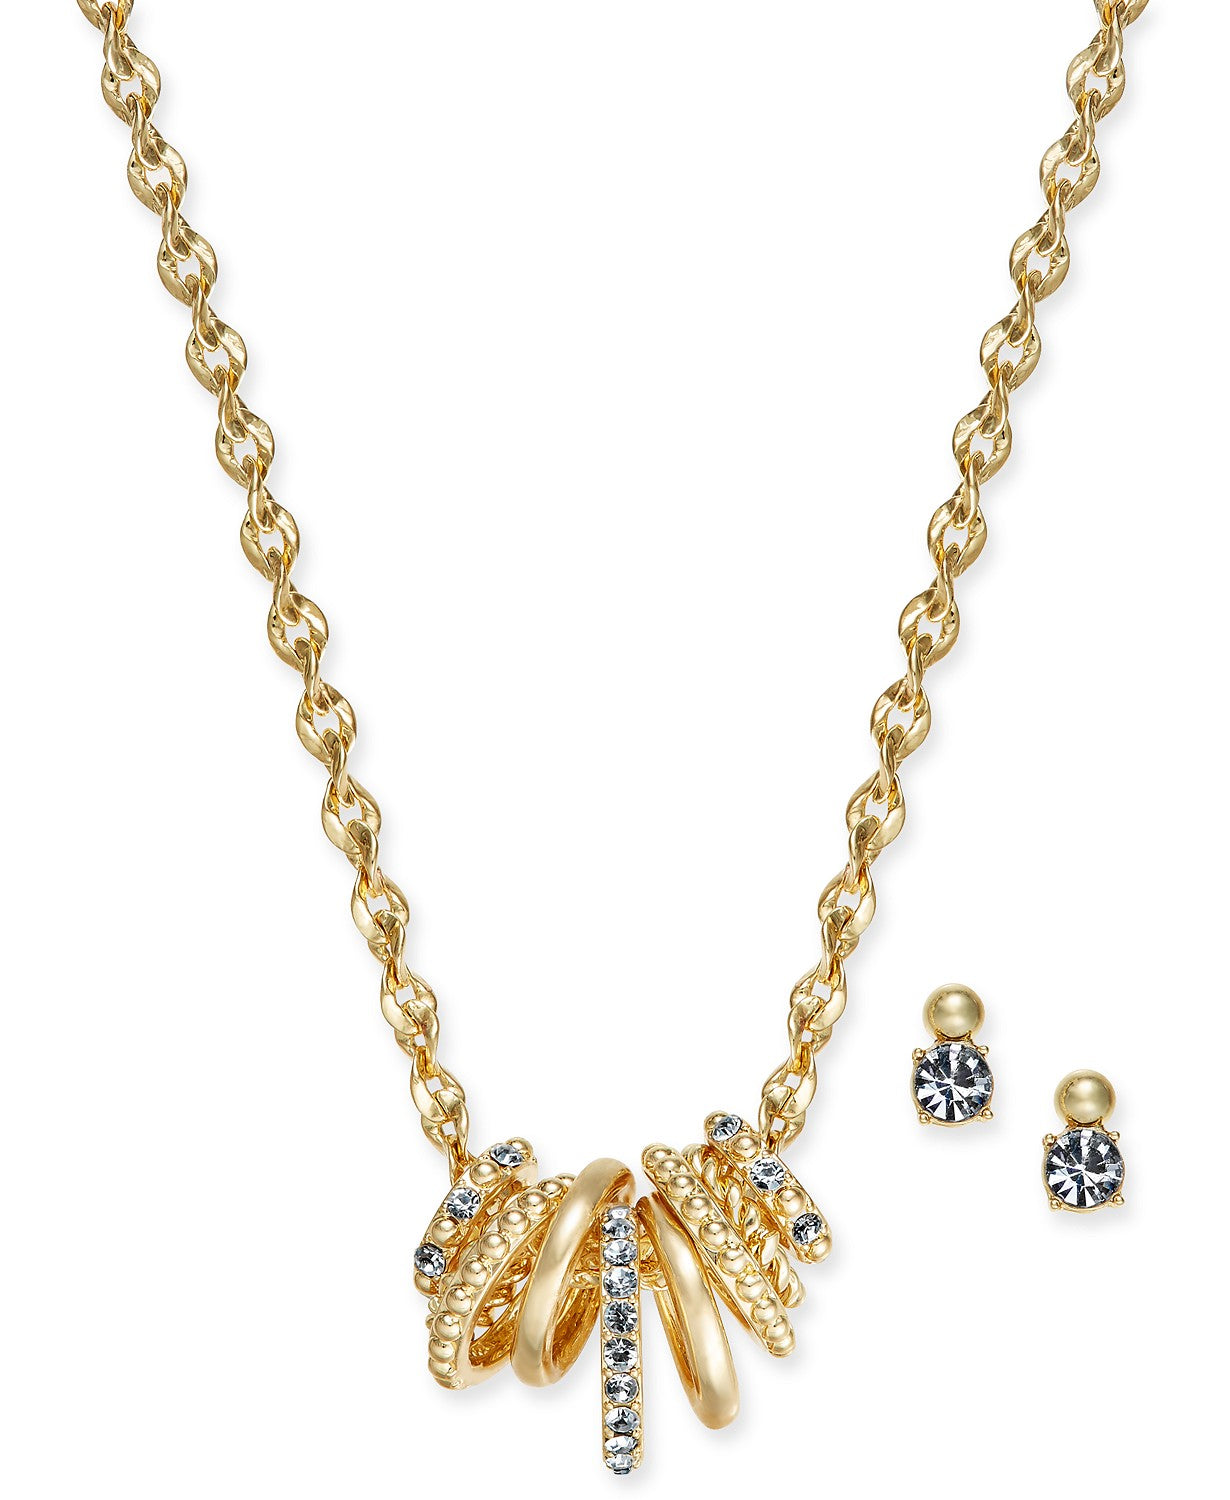 Charter Club Gold-Tone 2-Pc. Set Multi-Ring Pendant Necklace and Crystal Stud Earrings